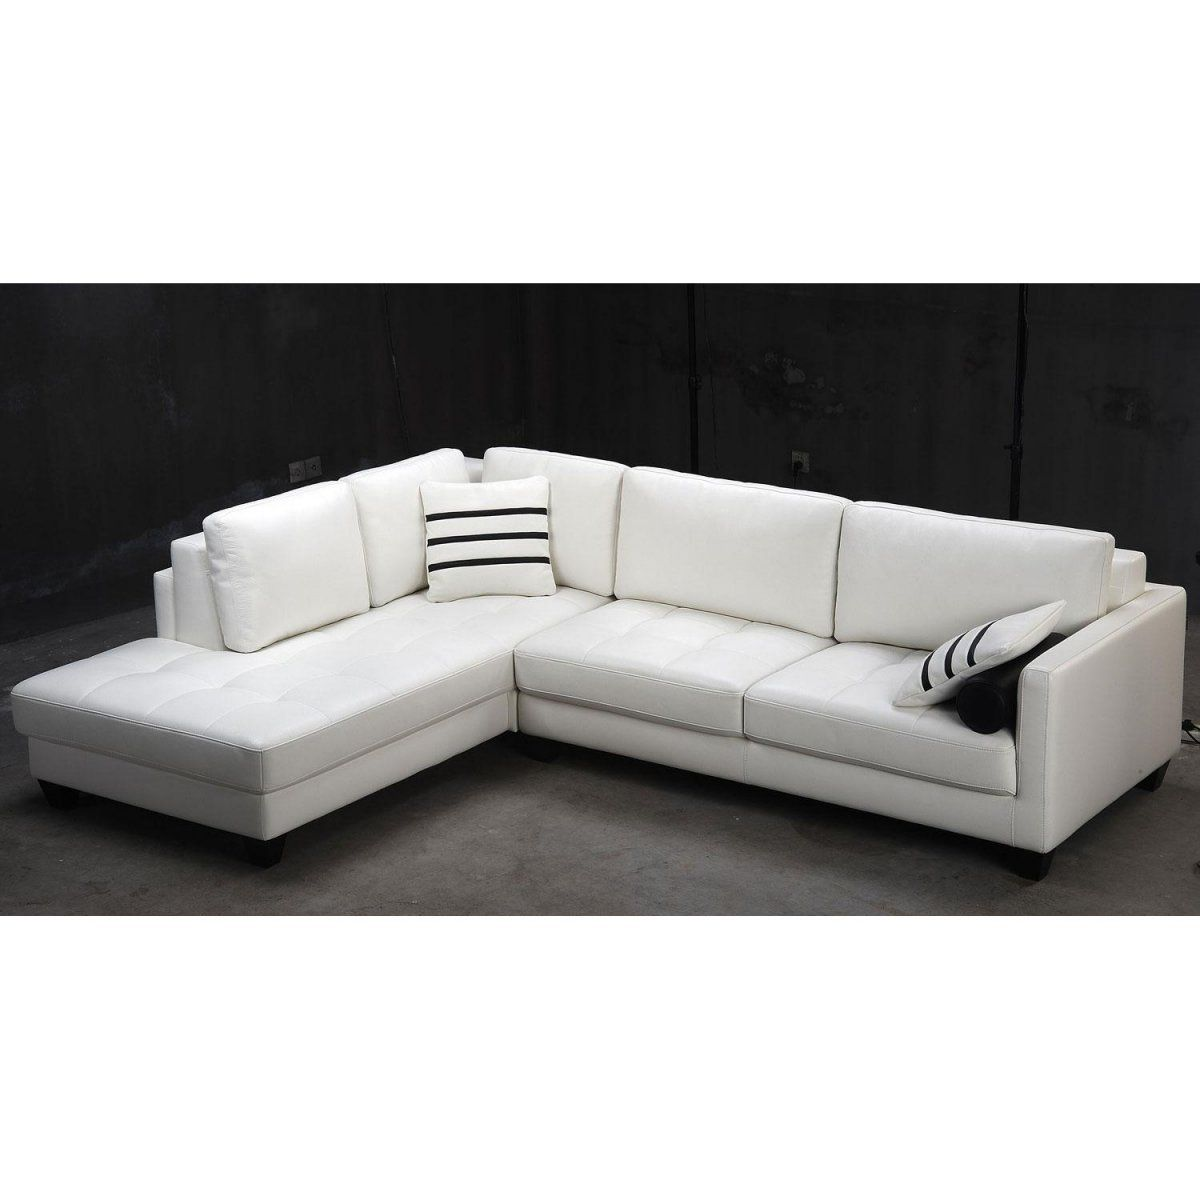 Tosh Furniture Modern White Leather Sectional Sofa Leathersectionalsofas